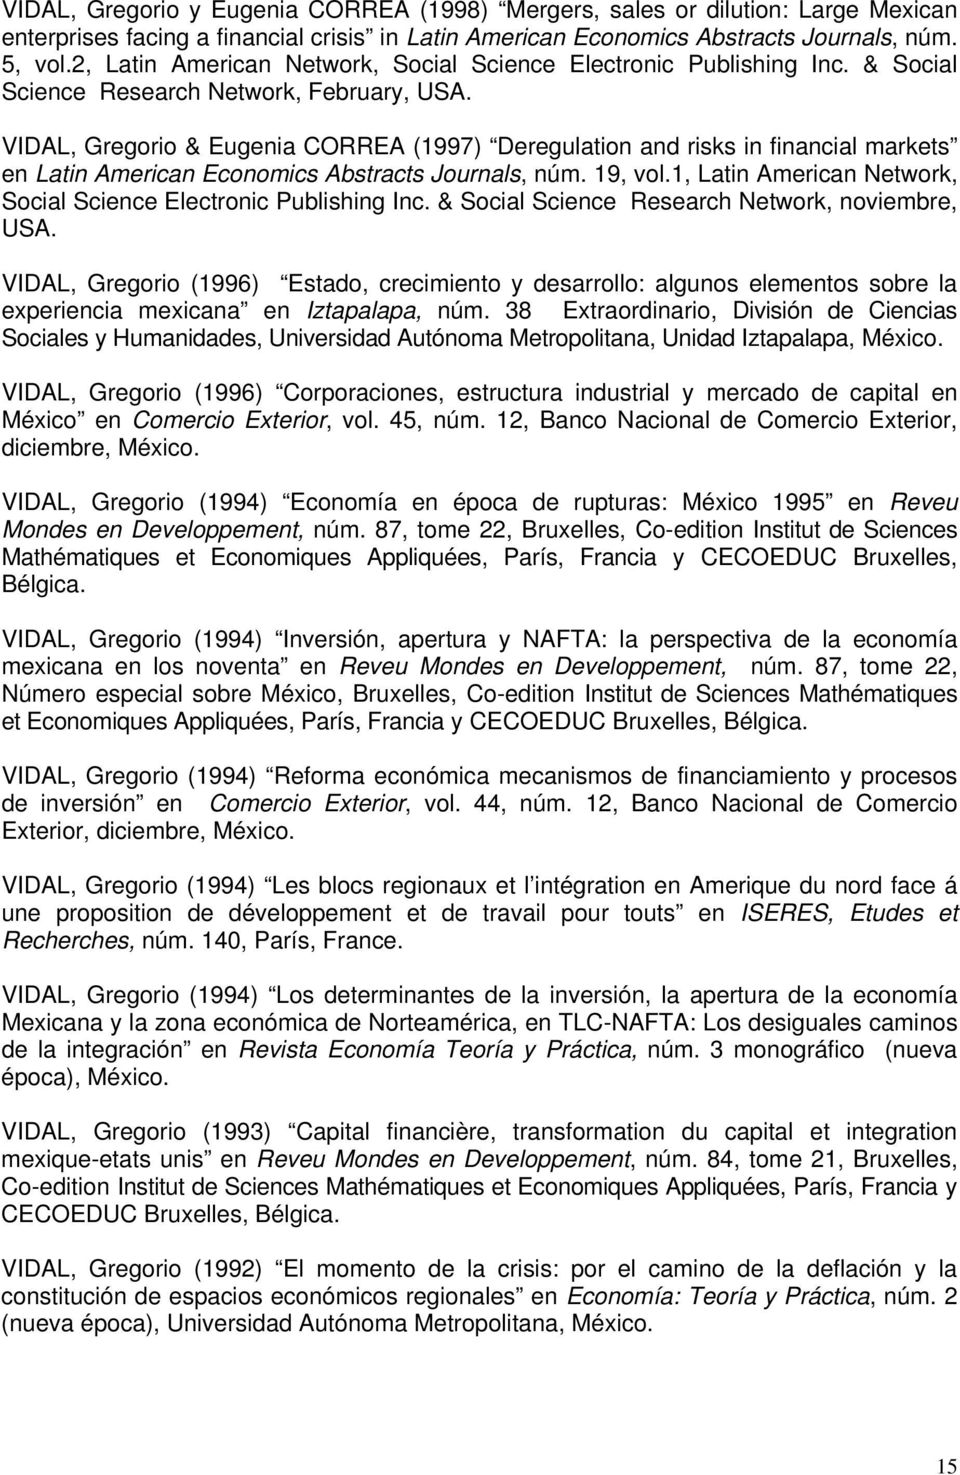 VIDAL, Gregorio & Eugenia CORREA (1997) Deregulation and risks in financial markets en Latin American Economics Abstracts Journals, núm. 19, vol.